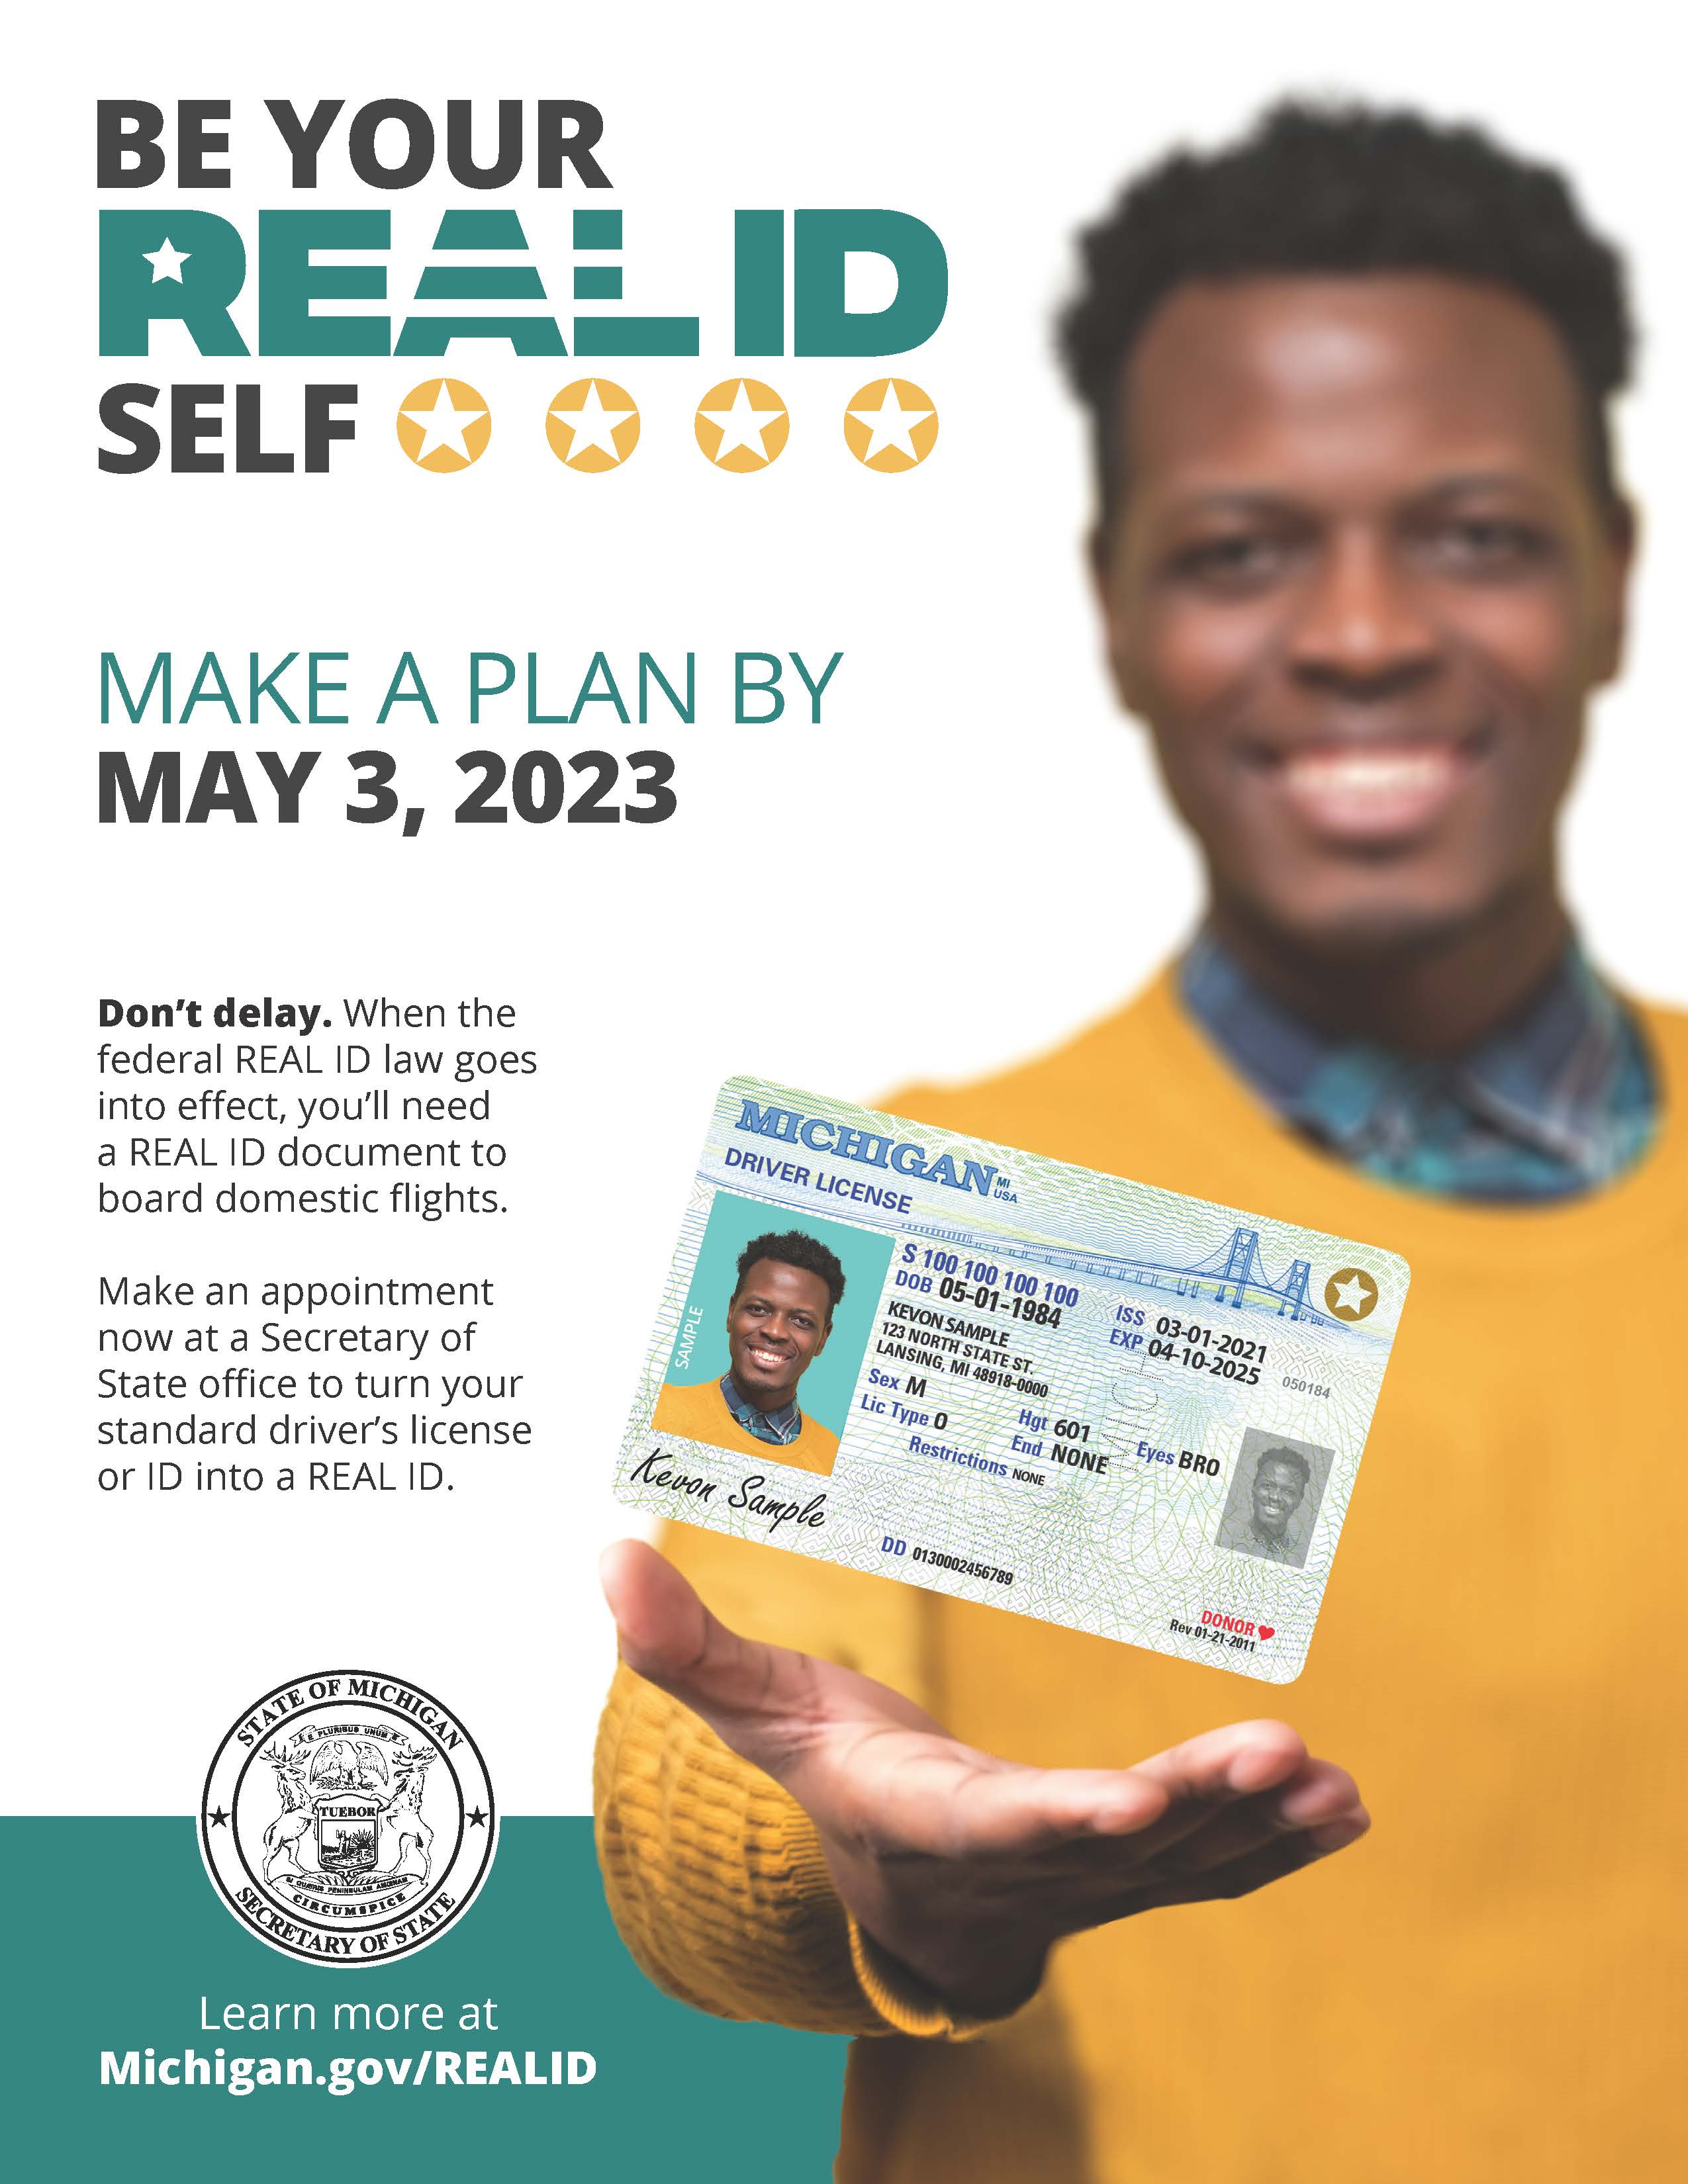 Make an appointment with the Secretary of State to get your REAL ID by May 3 2023 in order to continue boarding domestic flights